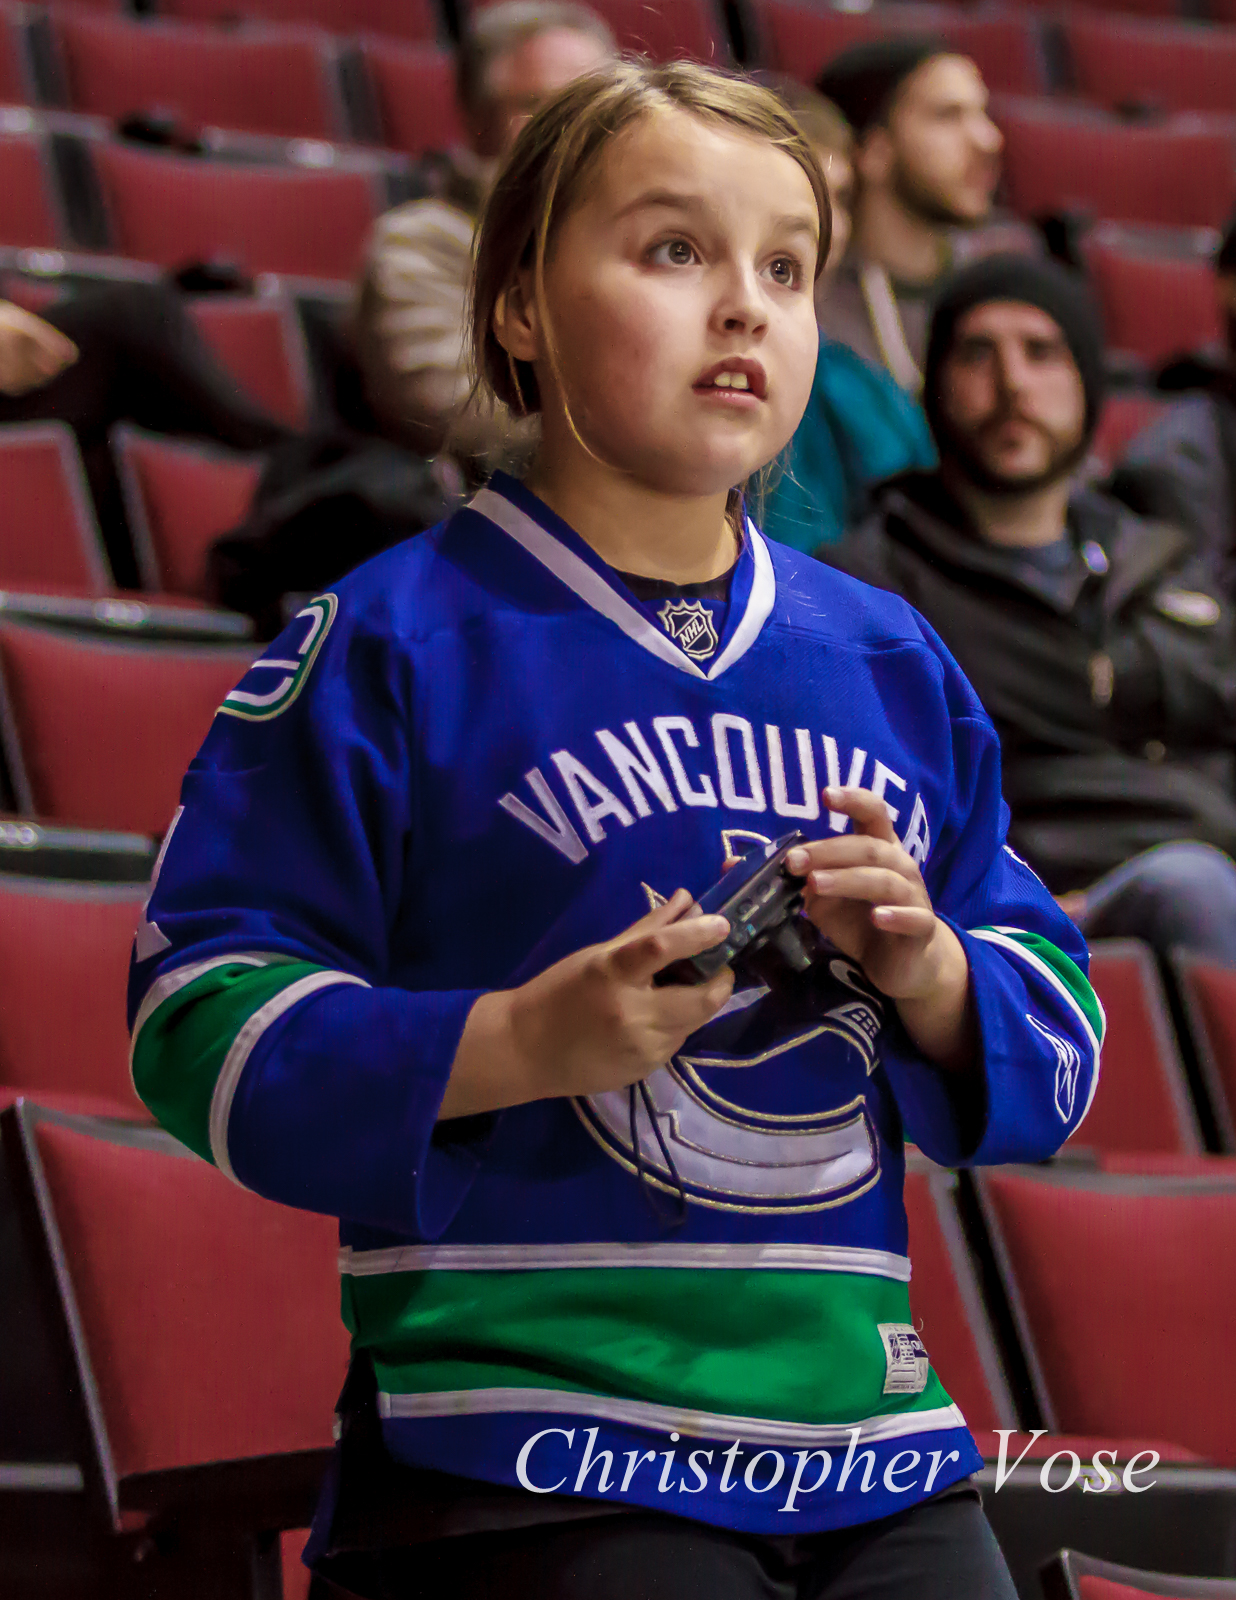 2015-03-10 Vancouver Canucks Supporter.jpg